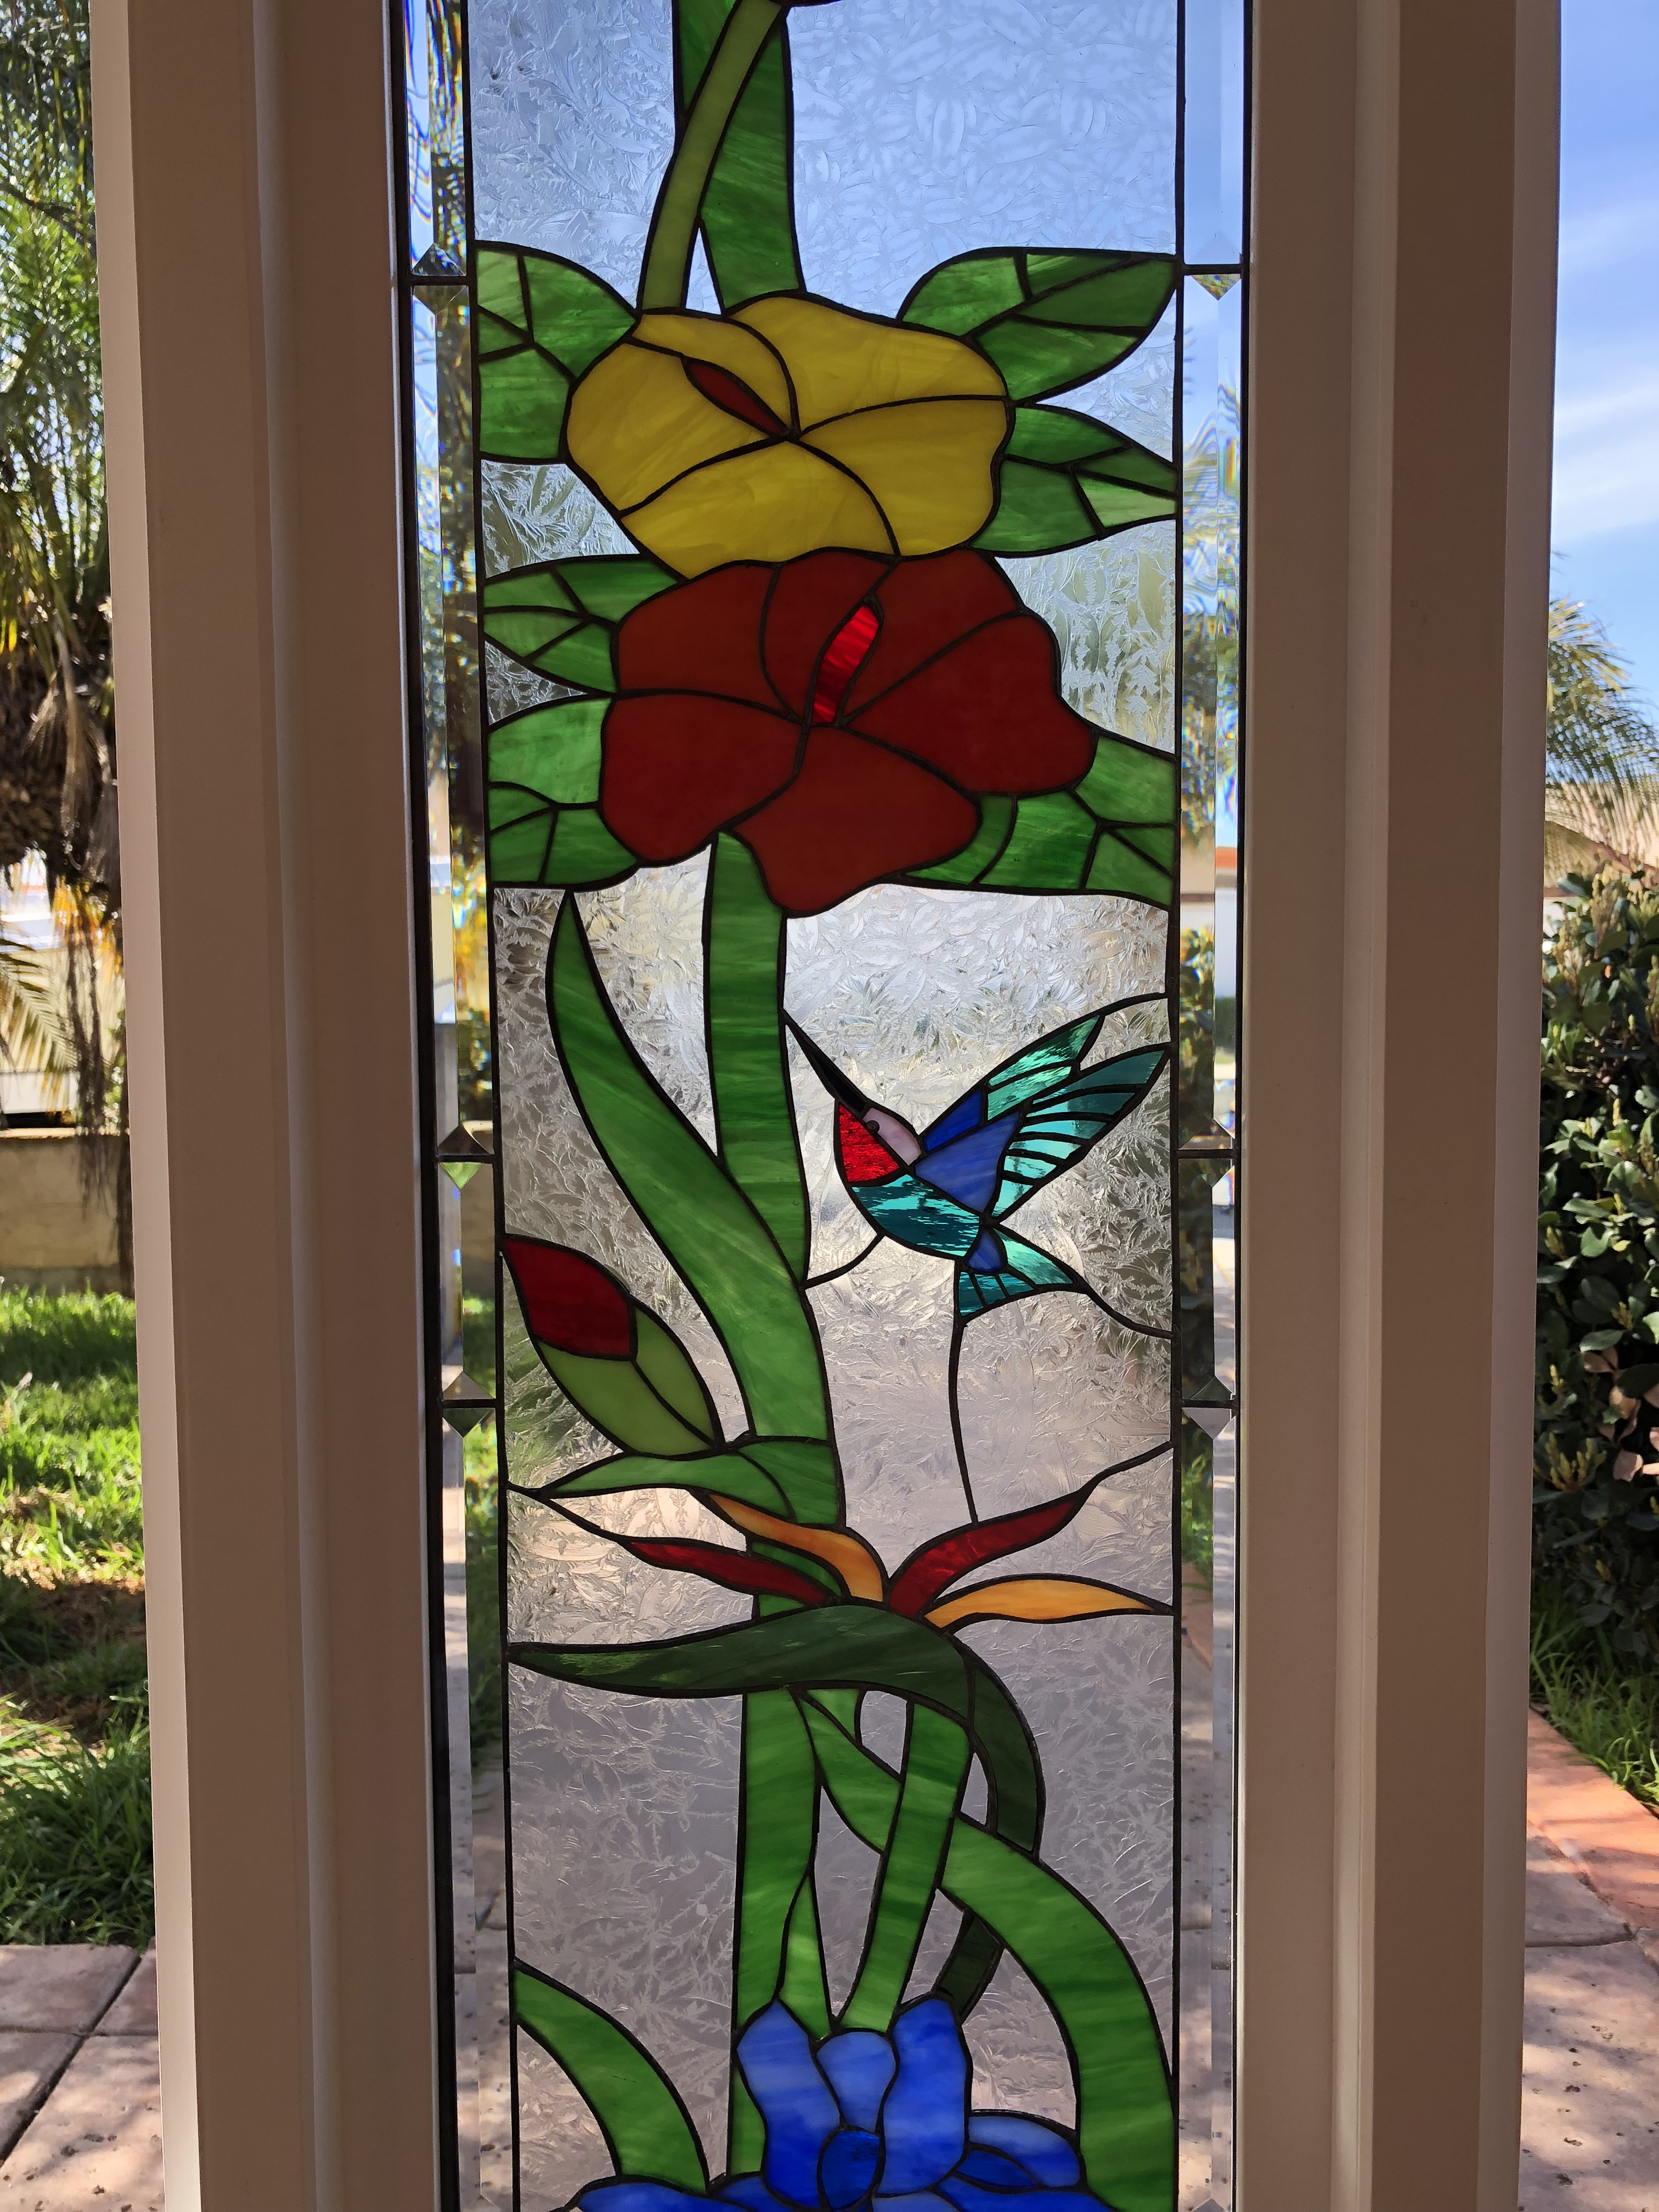 vinyl framed and tempered glass insulated   the  u0026quot hummingbird garden sidelite u0026quot  stained glass